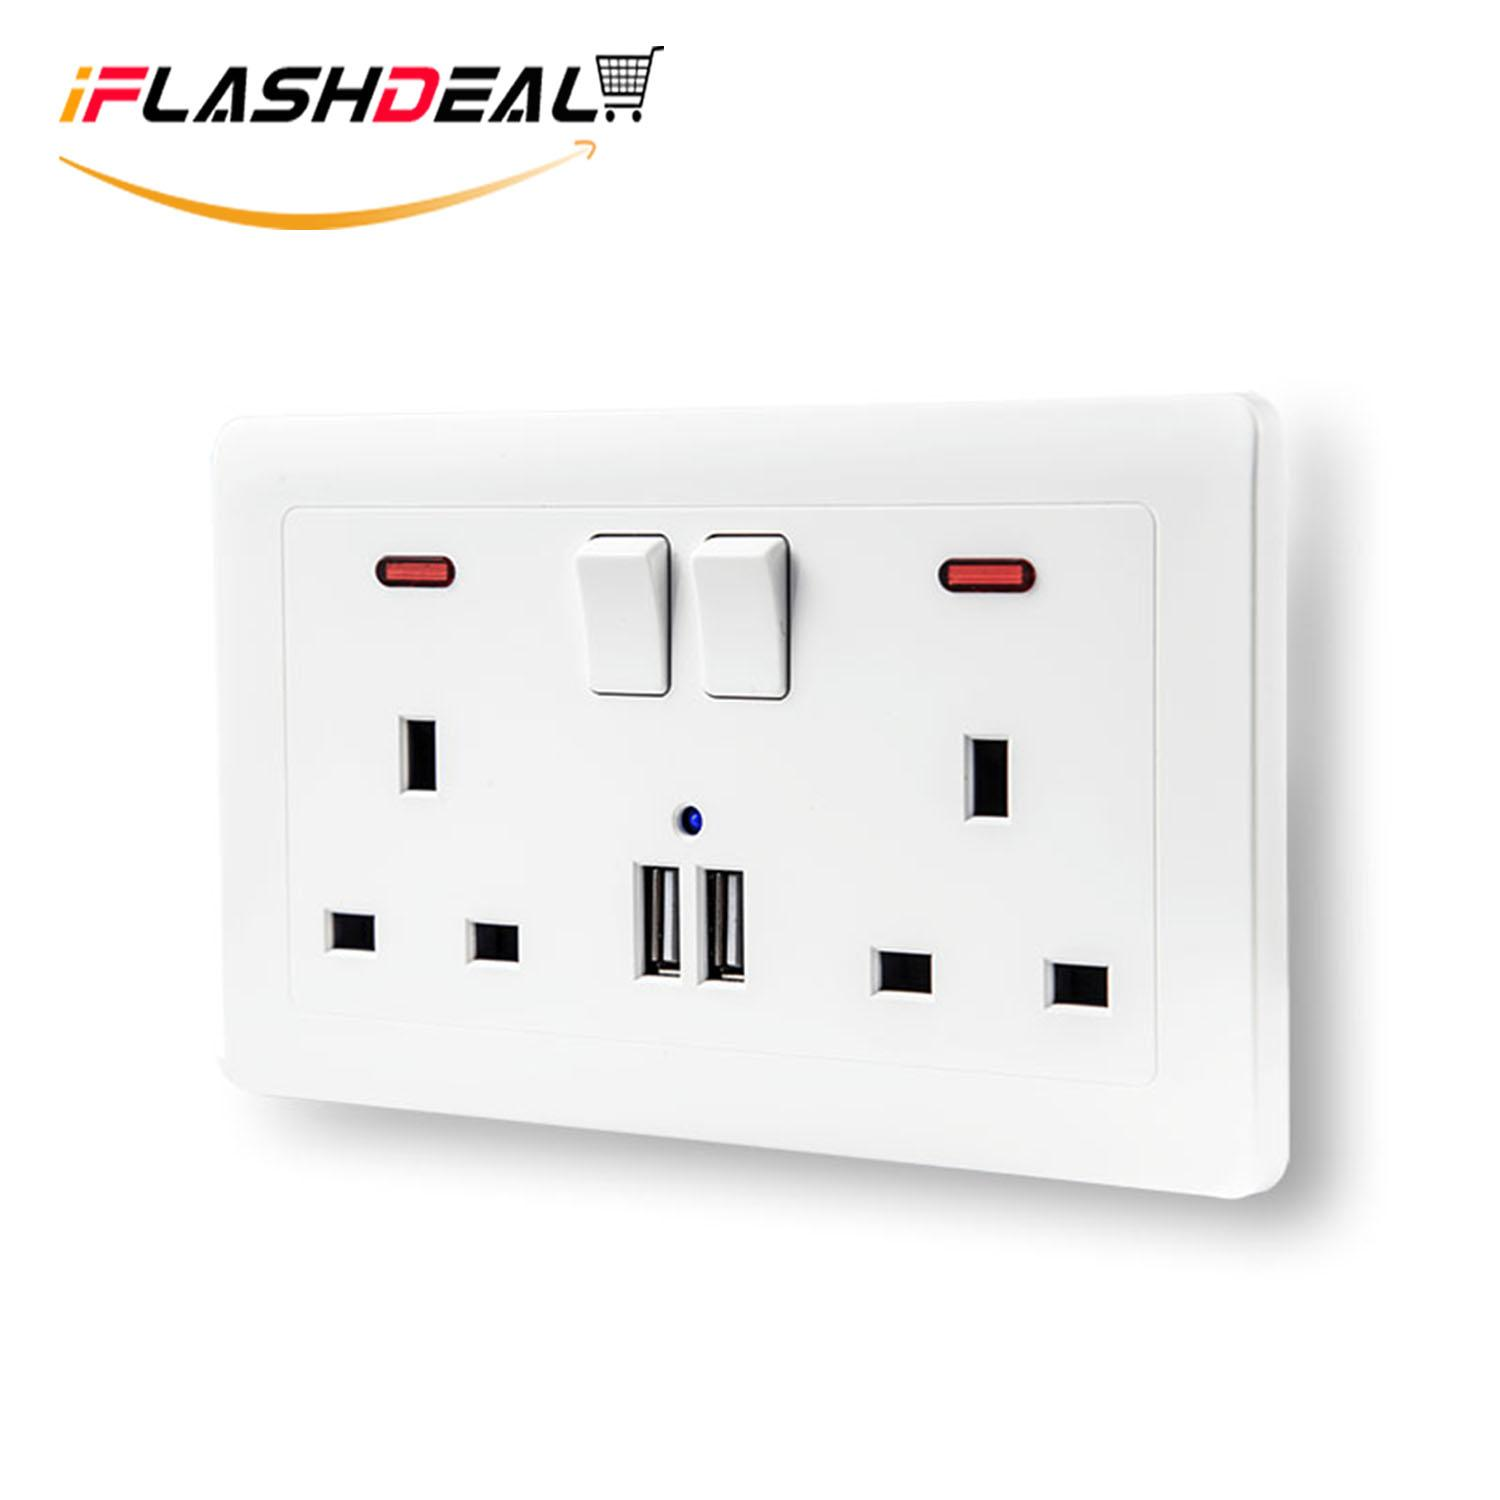 Iflashdeal Usb Wall Socket Wall Plug Socket With 2x Usb Outlet Ports 2.1a By Iflashdeal.